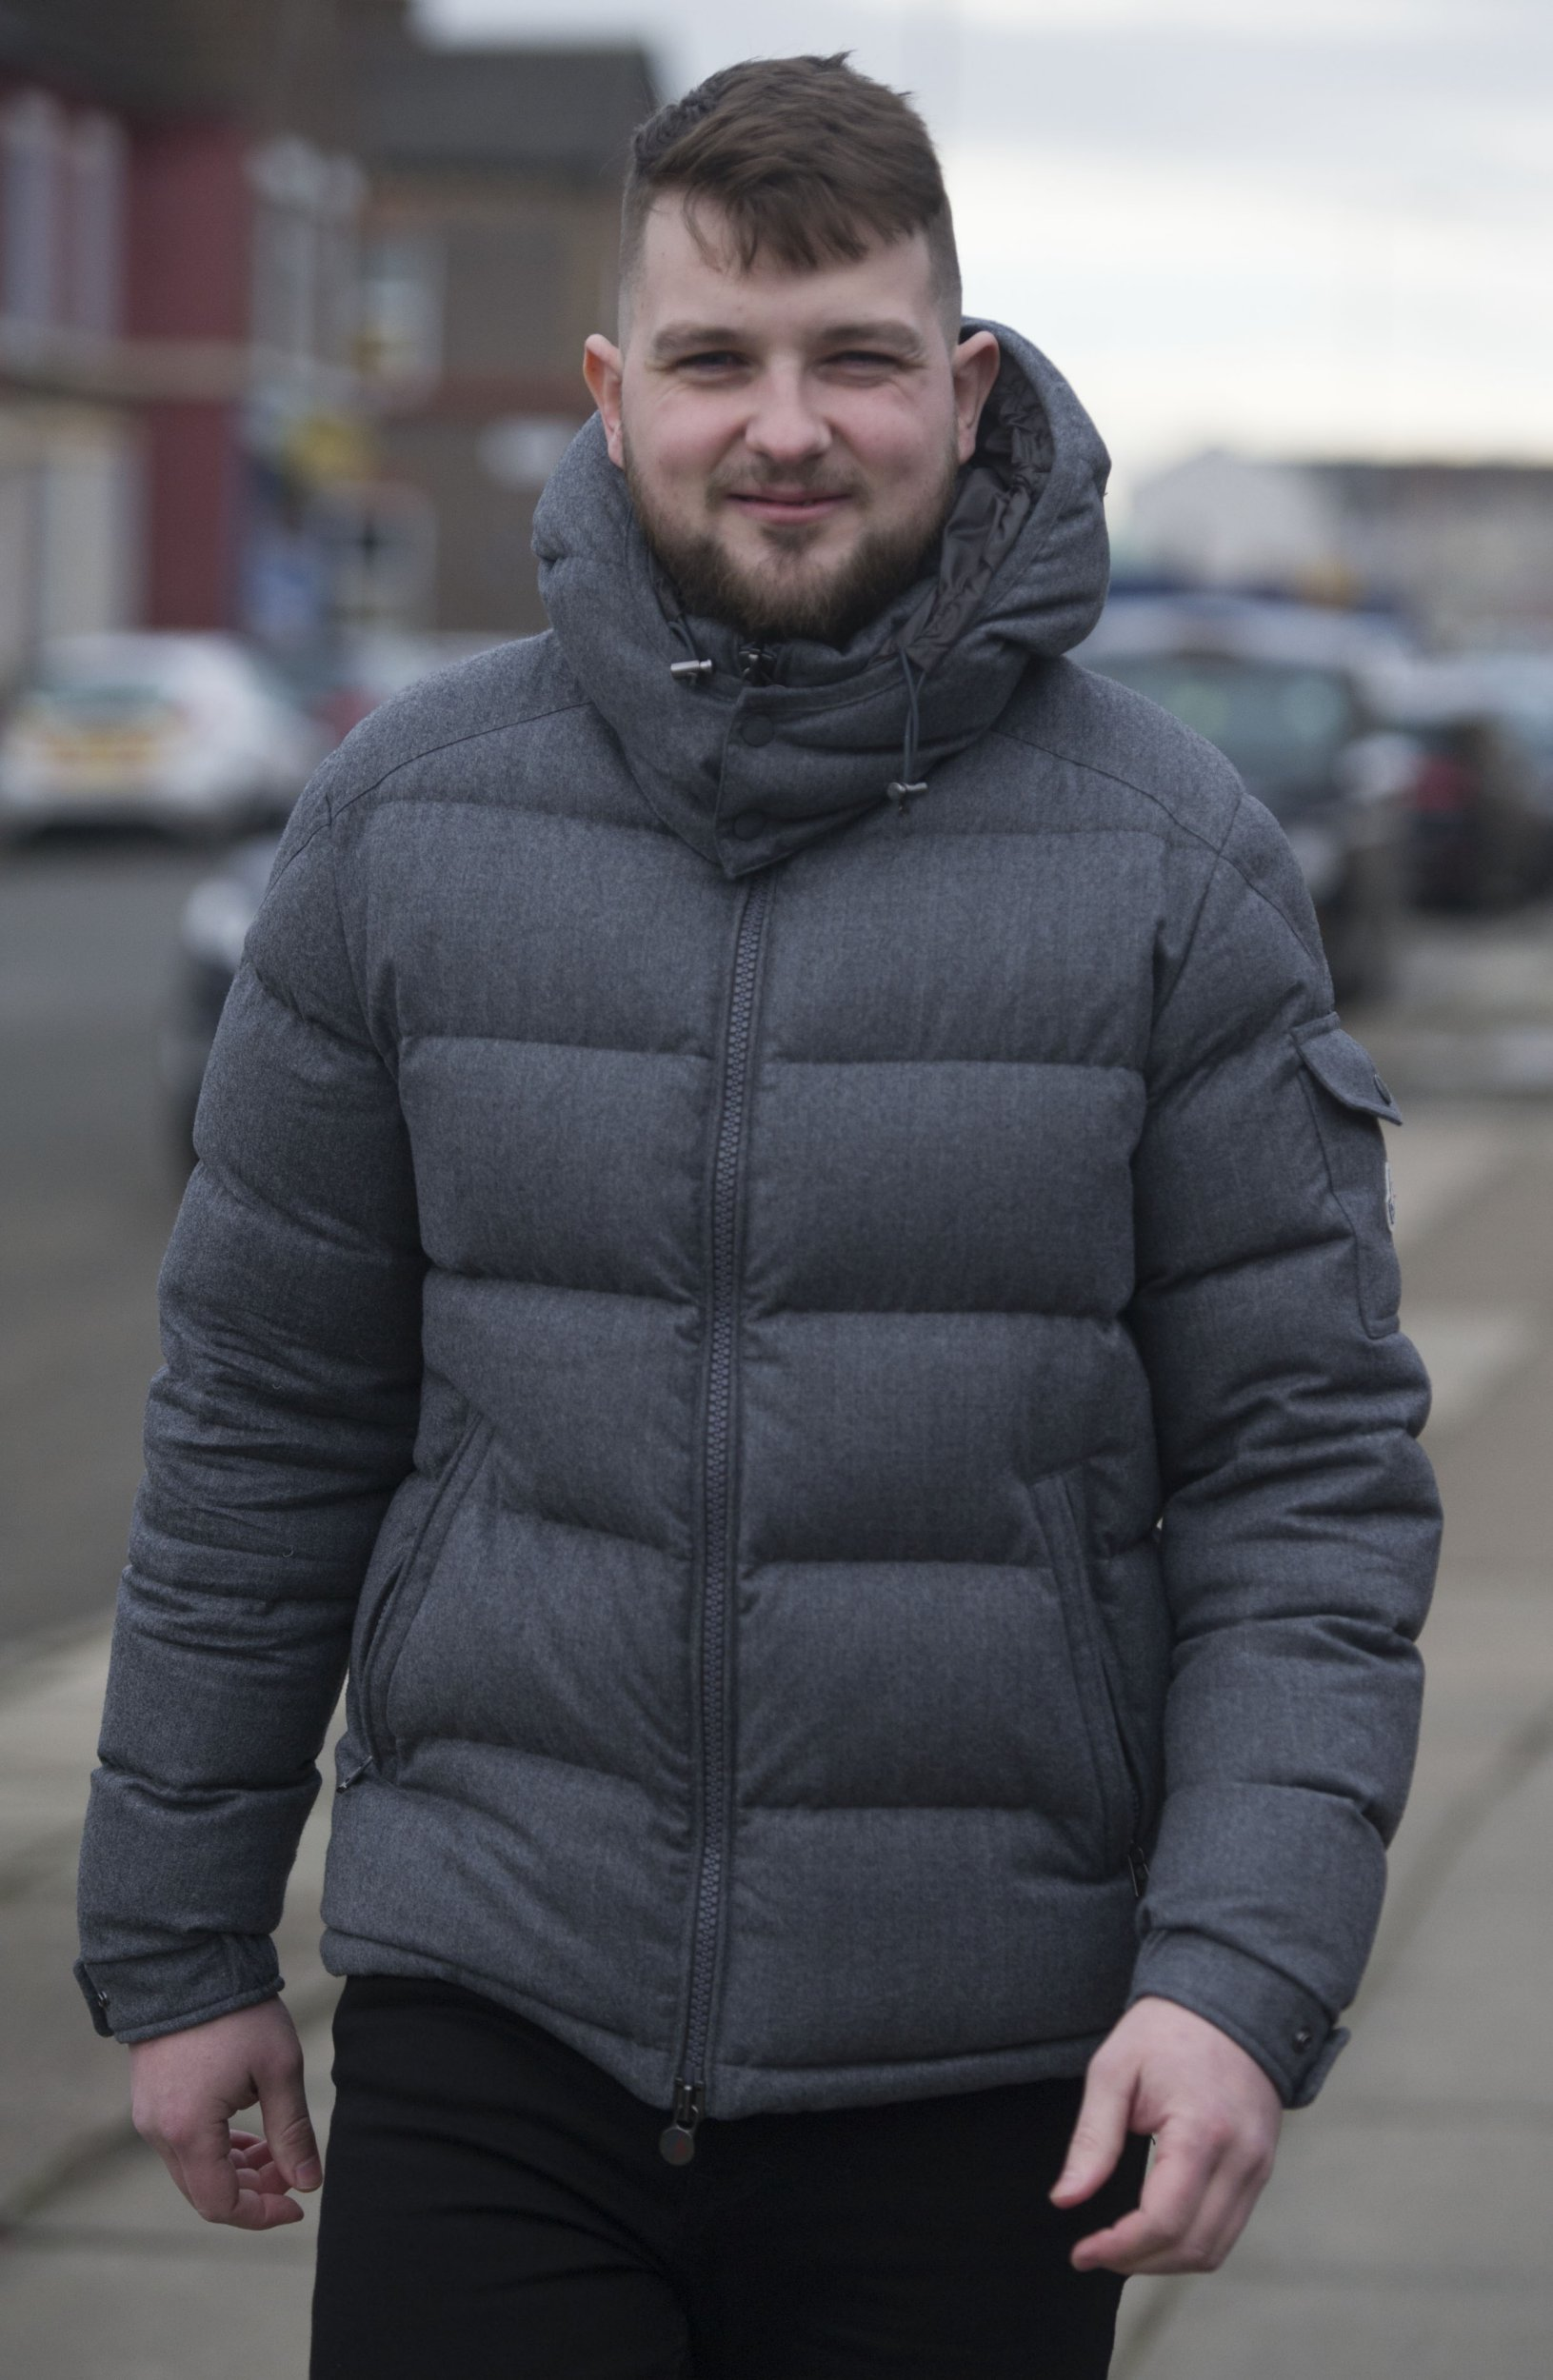 """A young dad turned yellow and swollen like Homer Simpson after he binged 20 cans of lager and a litre of vodka a day for 12 months. Mitchell Balzan was just 13 when he started drinking but by 21 he was an alcoholic and at 24 was bed ridden, drinking himself into a stupor ever day for a year. He would steal from friends and family to feed his addiction and emotionally manipulated his loved ones to try and get more booze. In his early 20s Mitchell, from Toxteth, Merseyside, would drink to """"self medicate"""" after staring to get so anxious he would have panic attacks."""